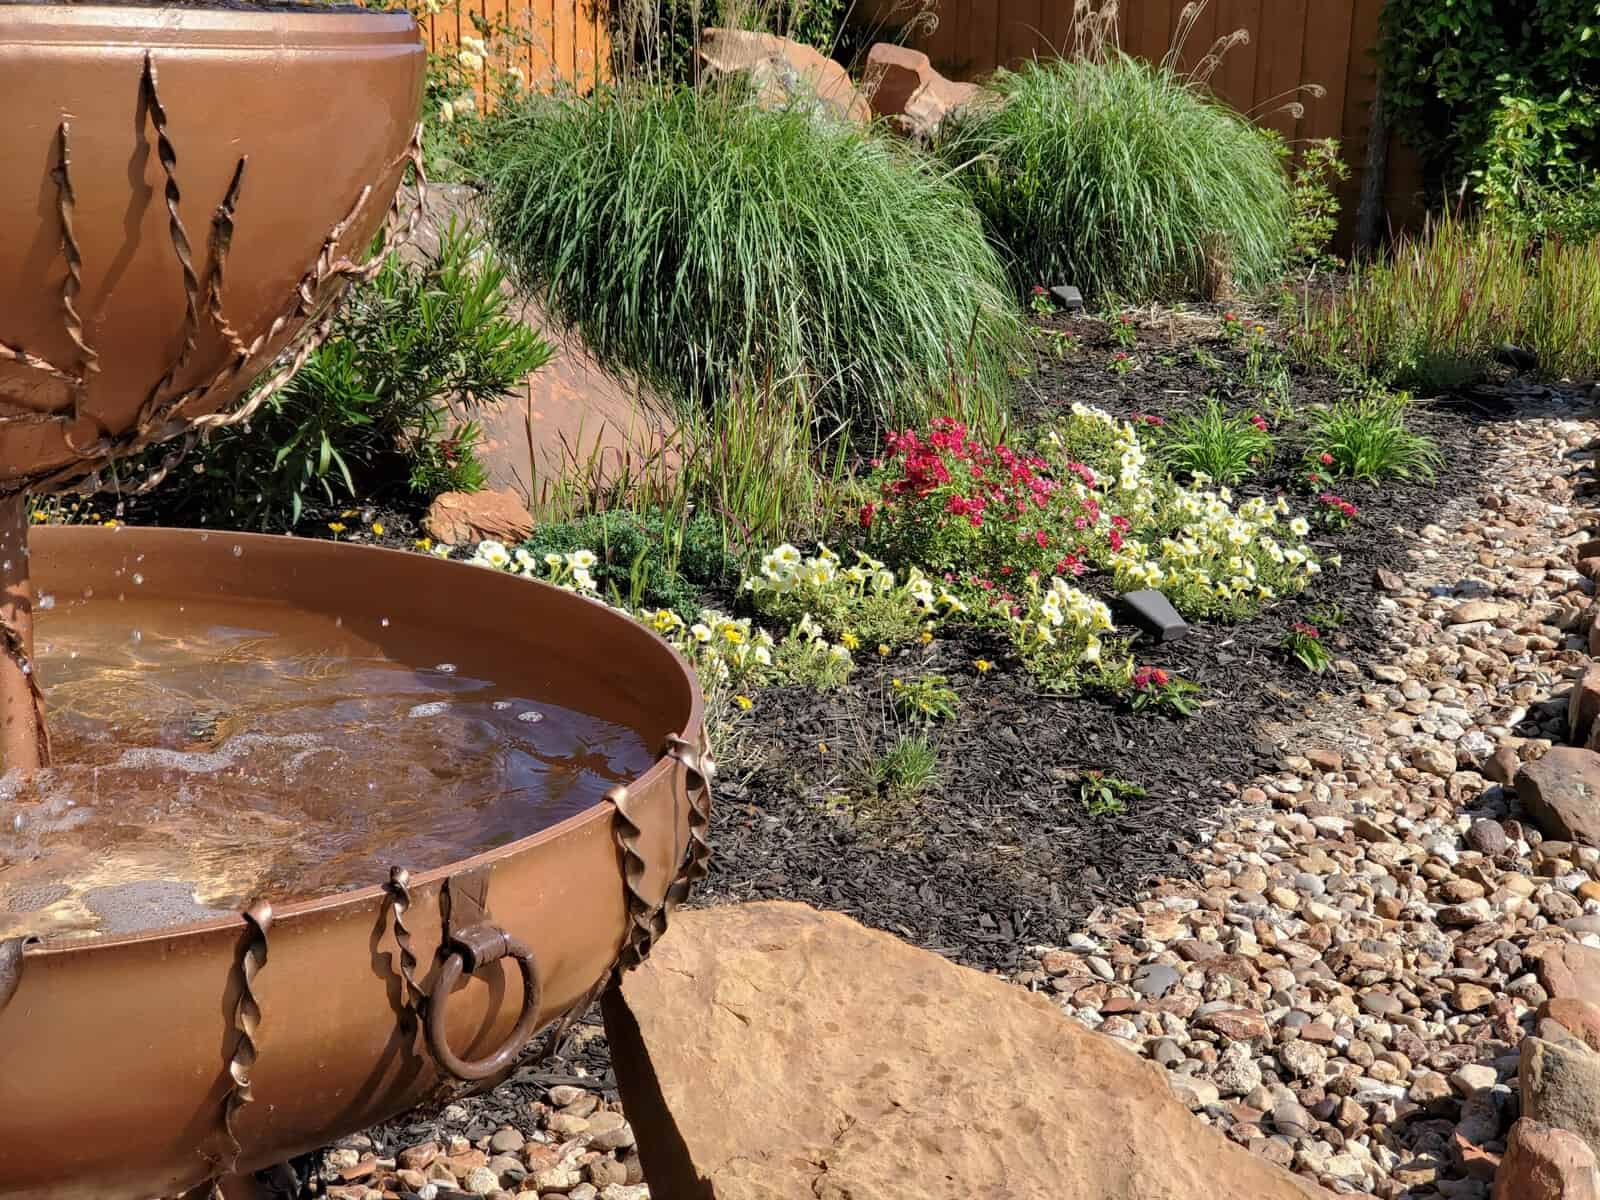 Combine hardscape and softscape elements to landscape large commercial properties